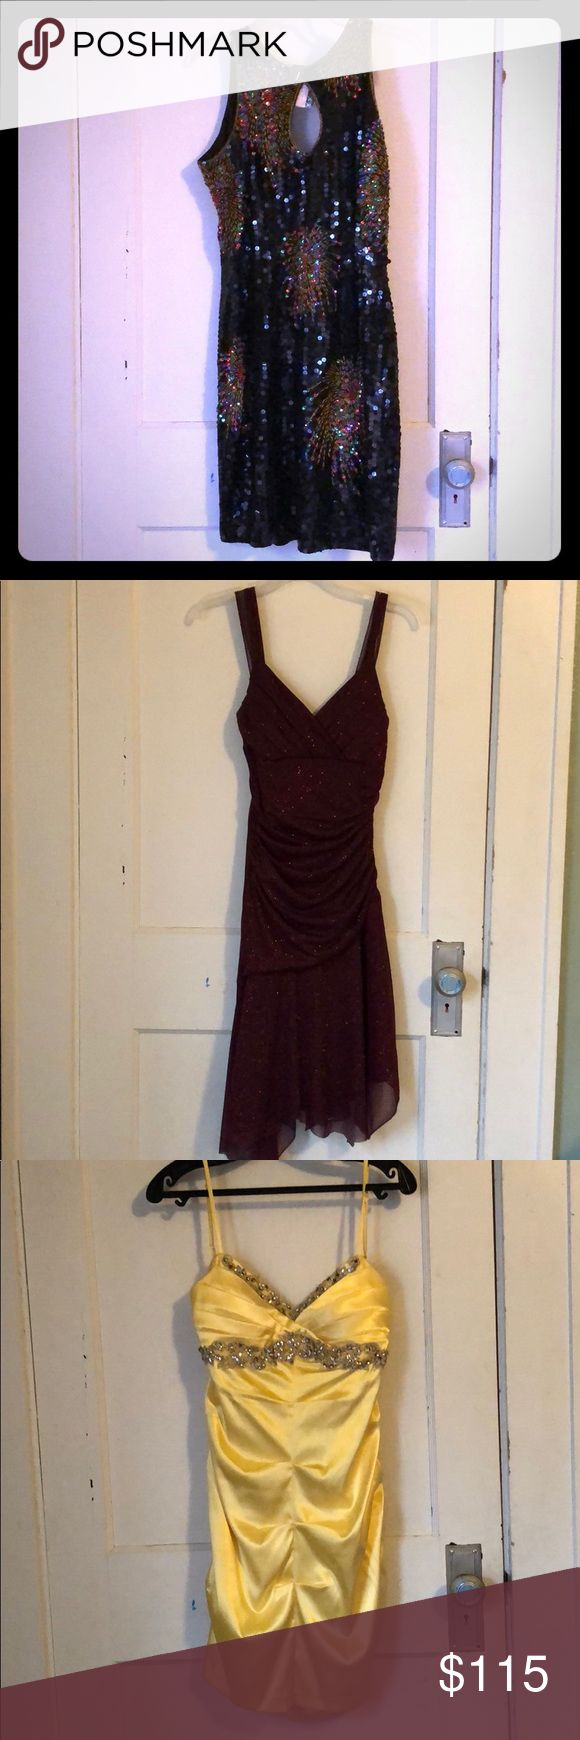 Formal, homecoming, and prom dresses The sparkly purple dress, flower purple dress, plain yellow dress, and blue dress are all a size medium. The sparkly black dress and the plain black dress are all a size large. The black and white sparkly dress is a size 11. The red dress is a size 12 and the metallic yellow dress is a size 13. Dresses Prom